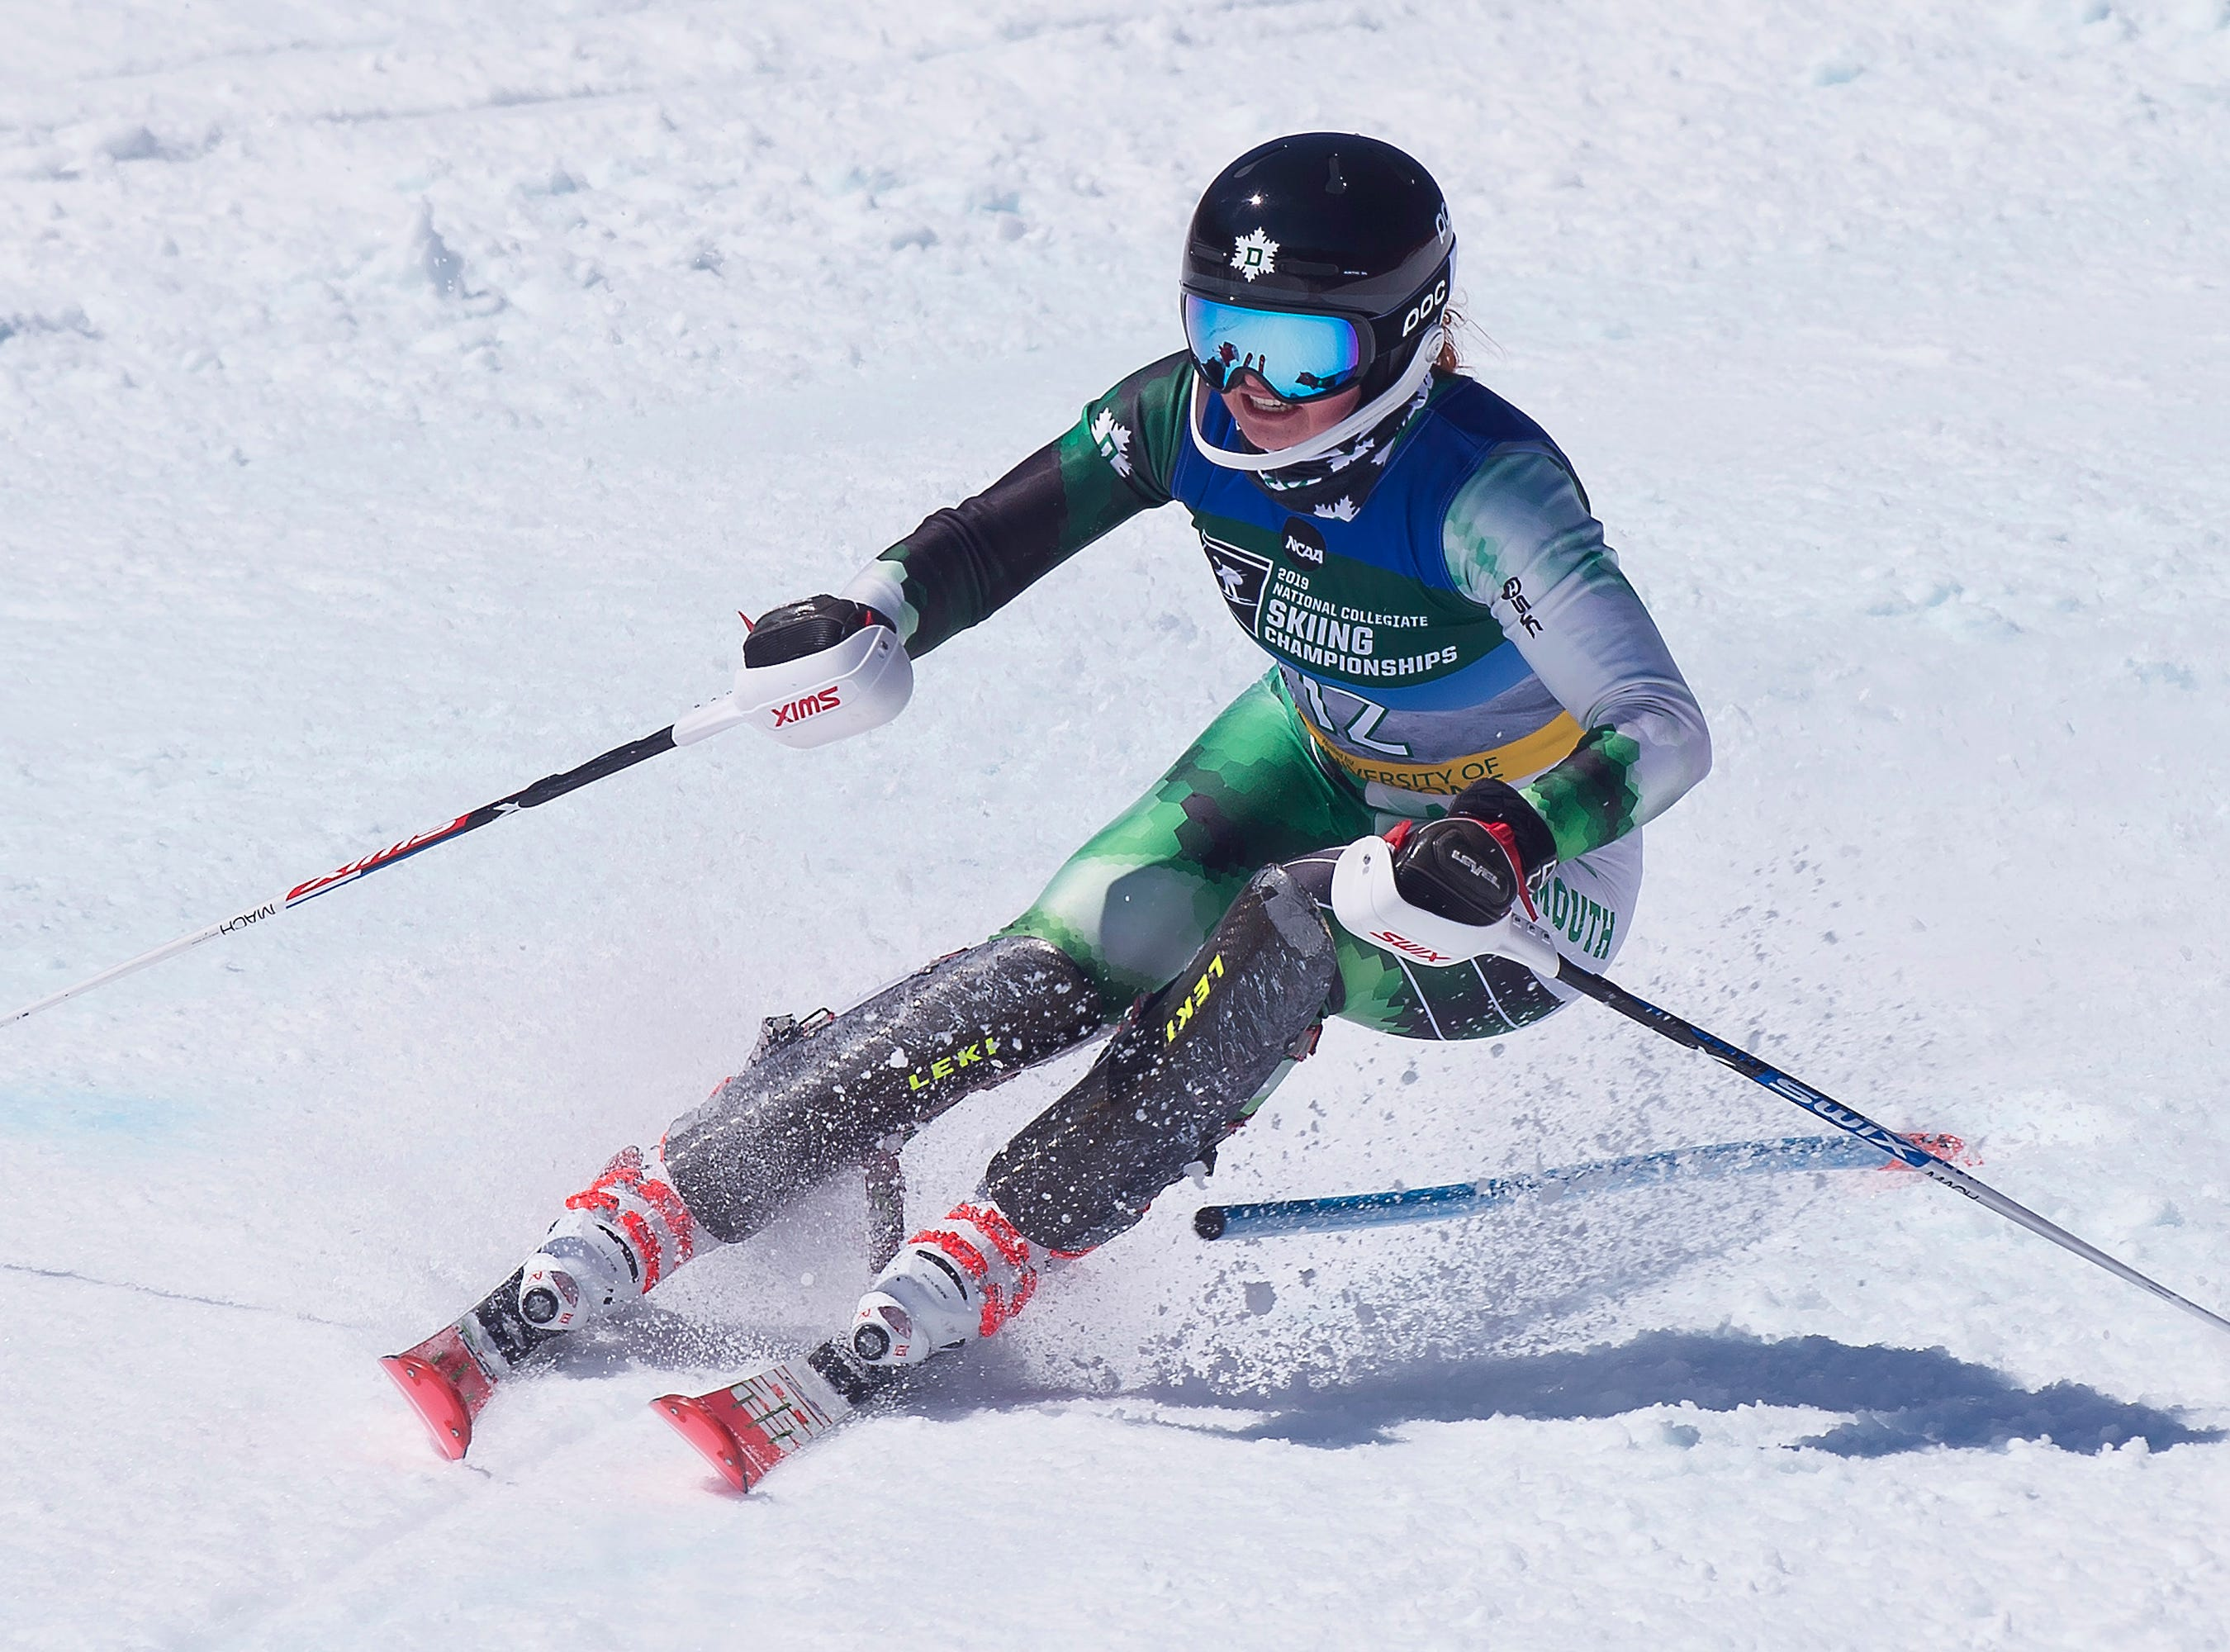 Dartmouth's Stephanie Currie turns past a gate at the NCAA slalom championships on Saturday at Stowe Mountain Resort.